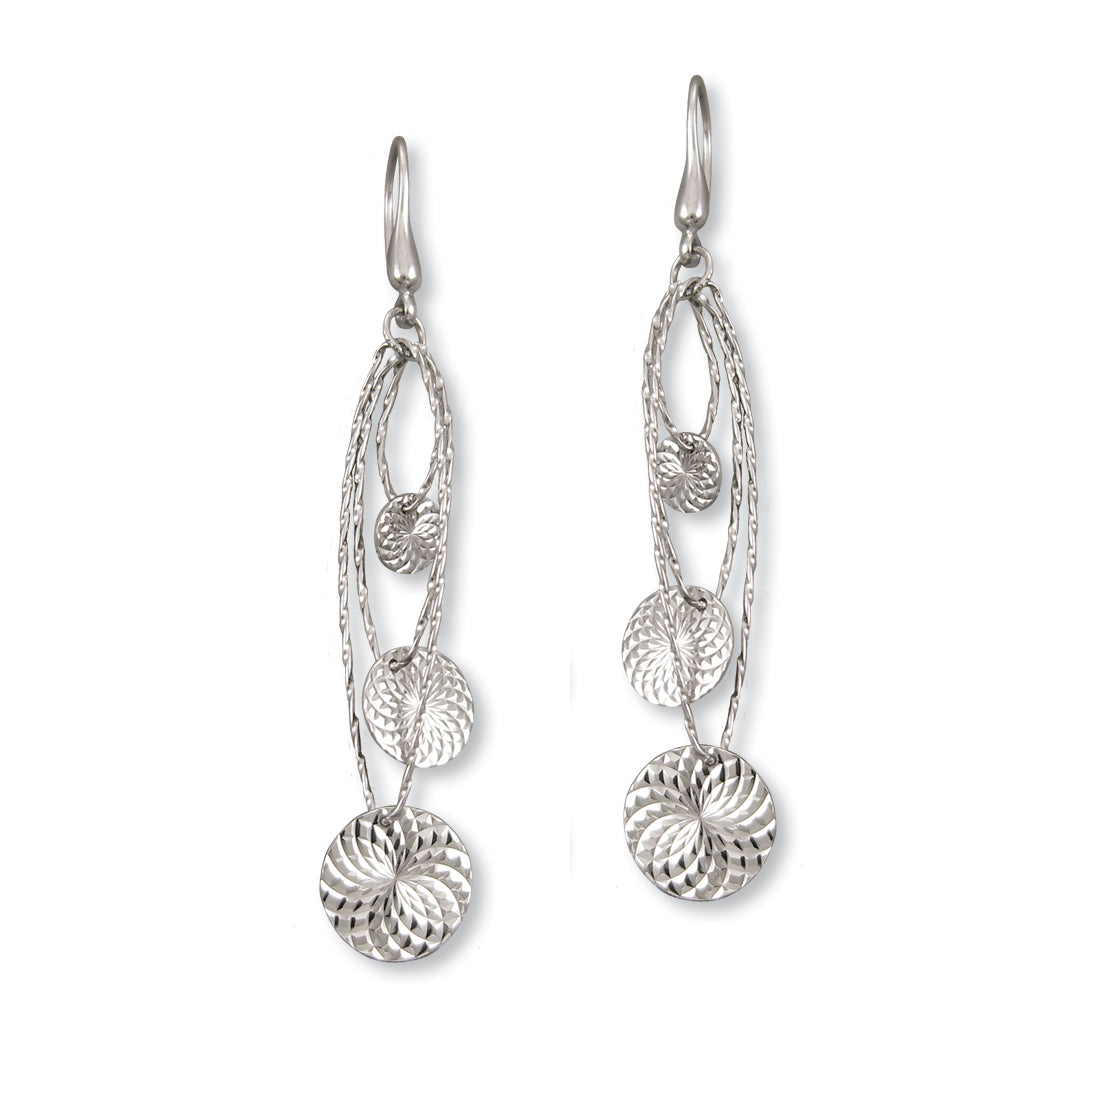 Triple Disc Dangle Earrings, Sterling Silver